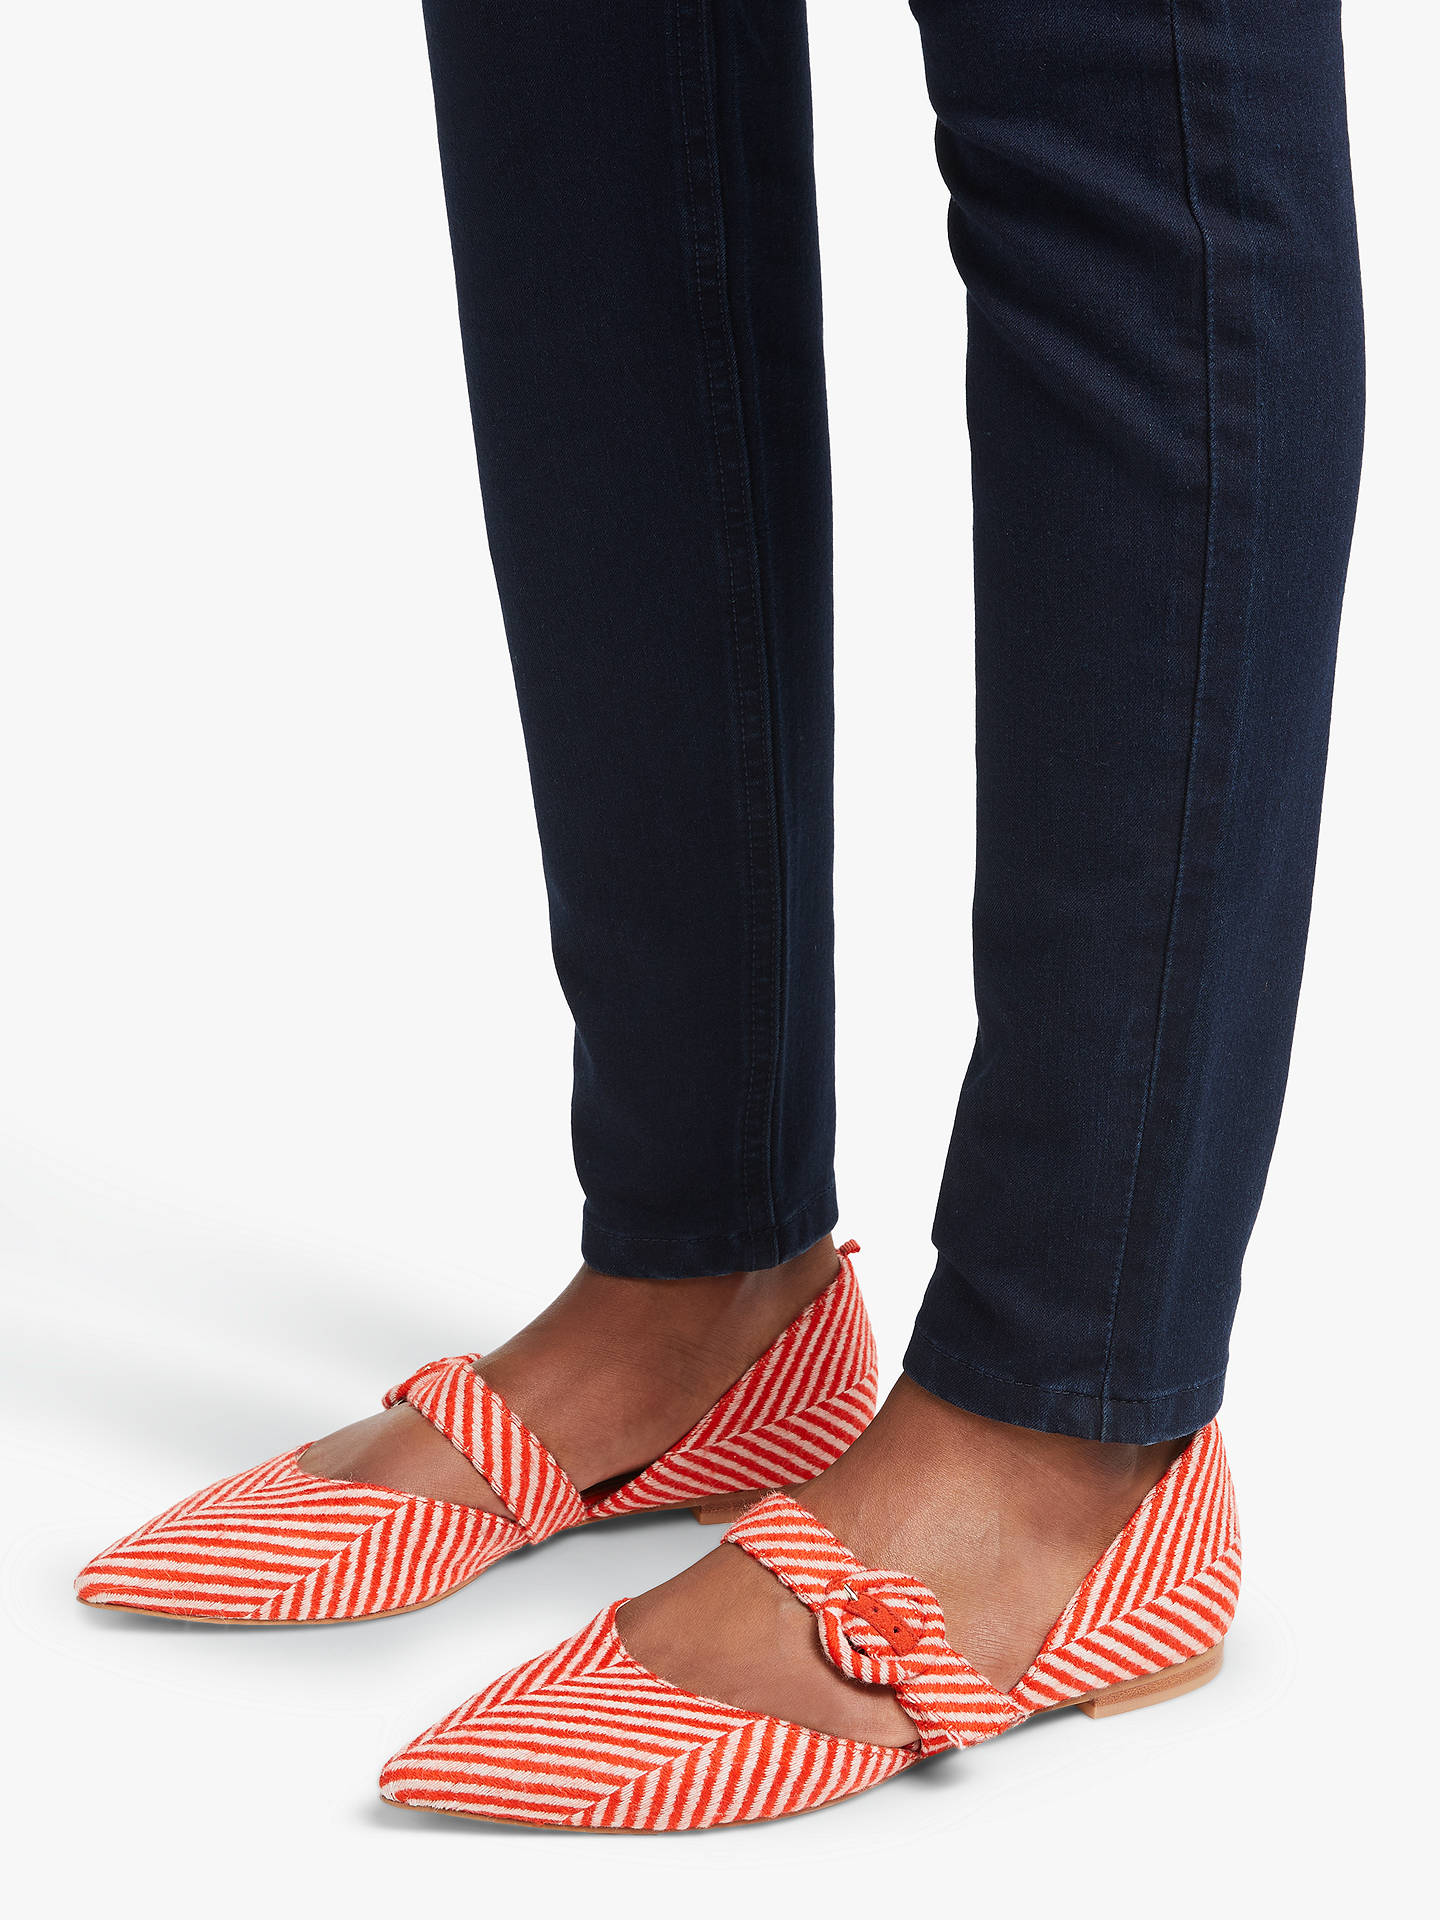 Buy Boden Evie Pointed Mary Jane Pumps, Gladioli Herringbone, 5 Online at johnlewis.com